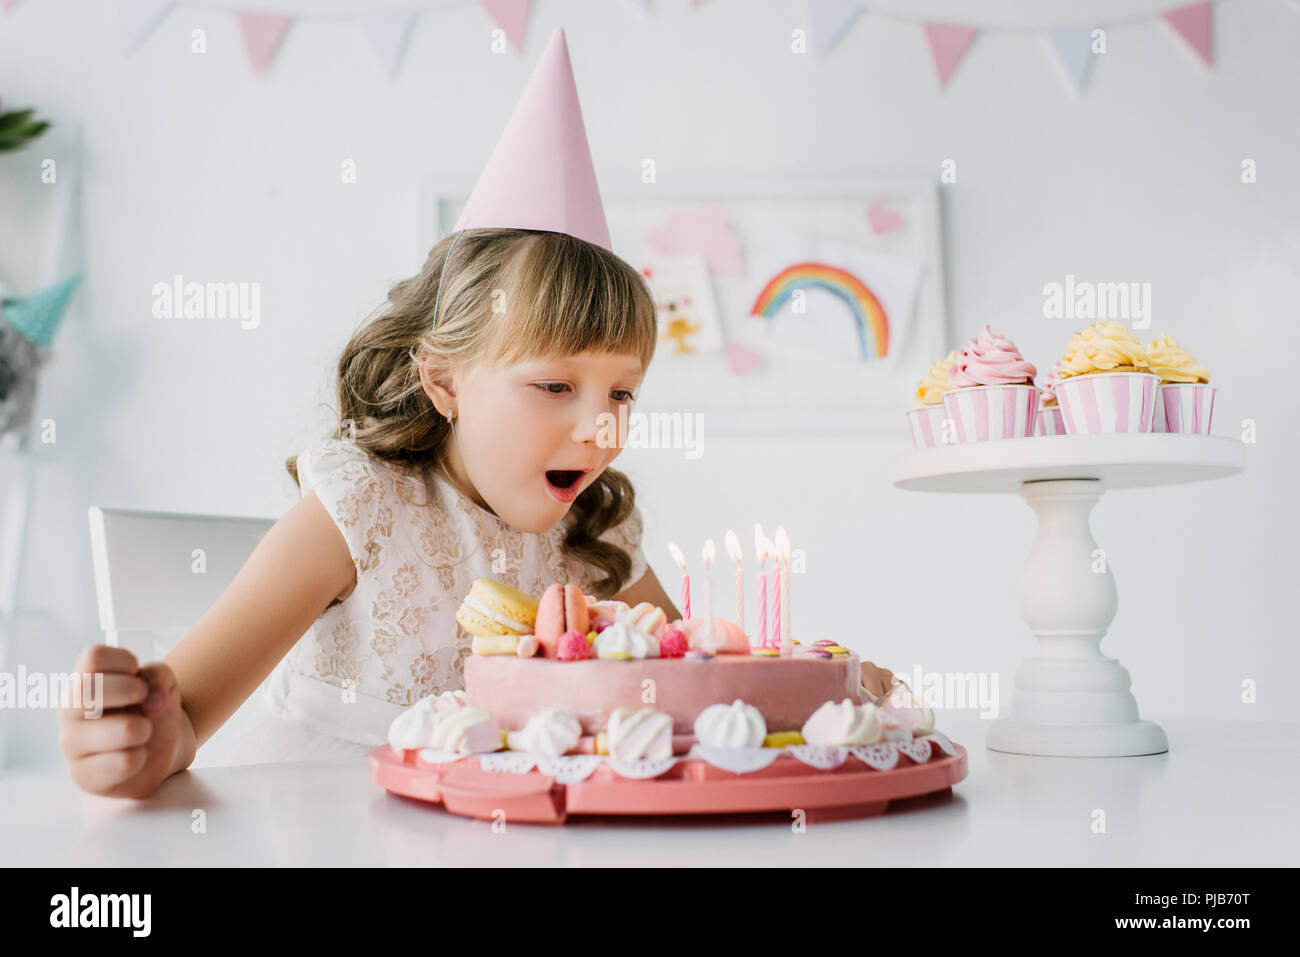 Little Birthday Girl In Cone Blowing Out Candles From Cake On Table